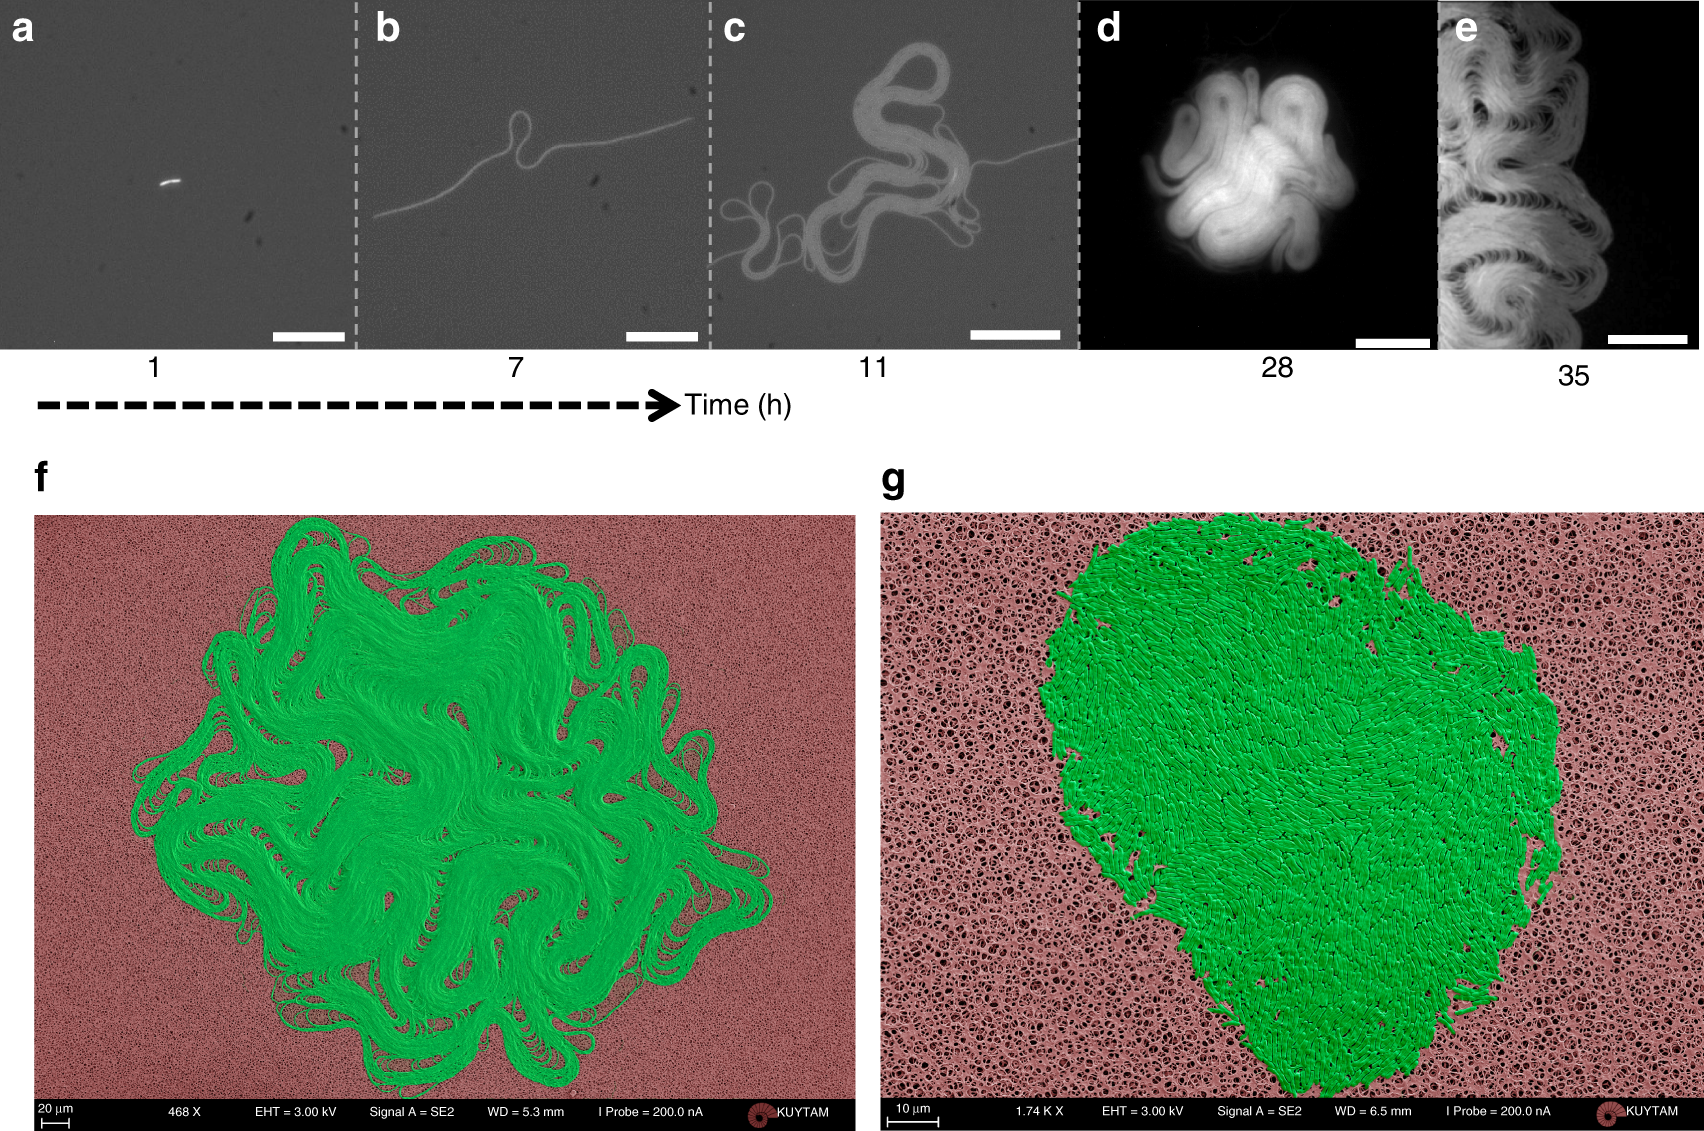 Emergence of active nematics in chaining bacterial biofilms | Nature